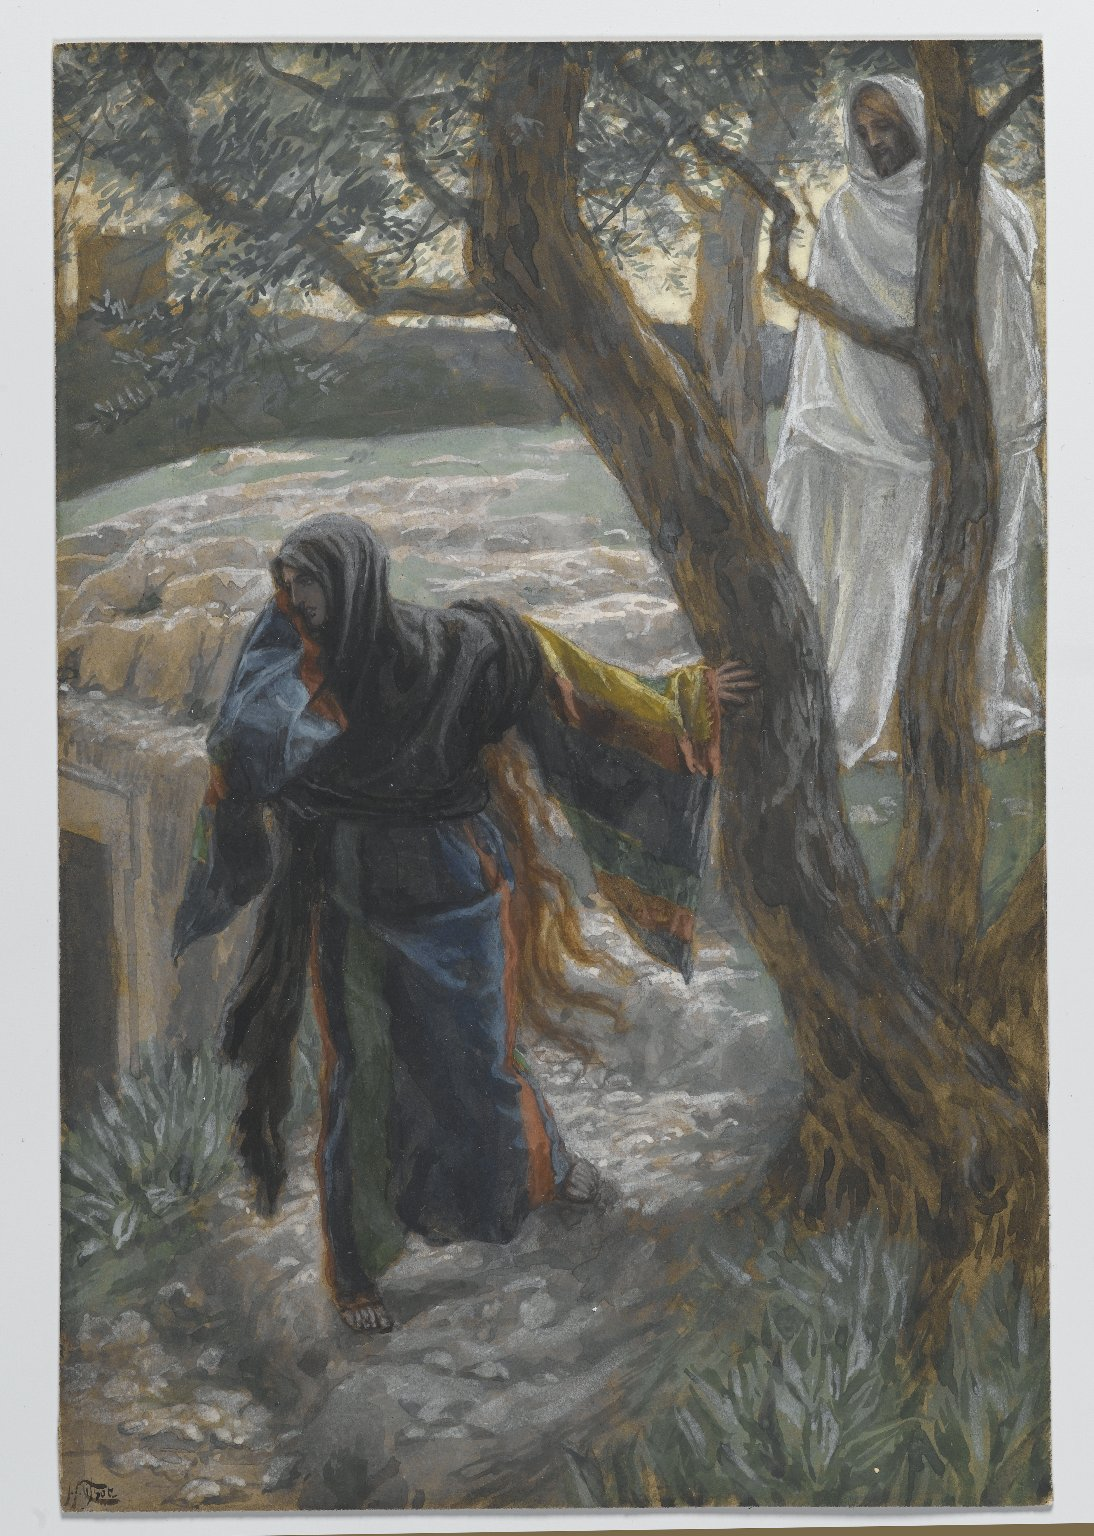 Jesus Appears to Mary Magdalene, James Tissot (1836-1902), Brooklyn Museum of Art.